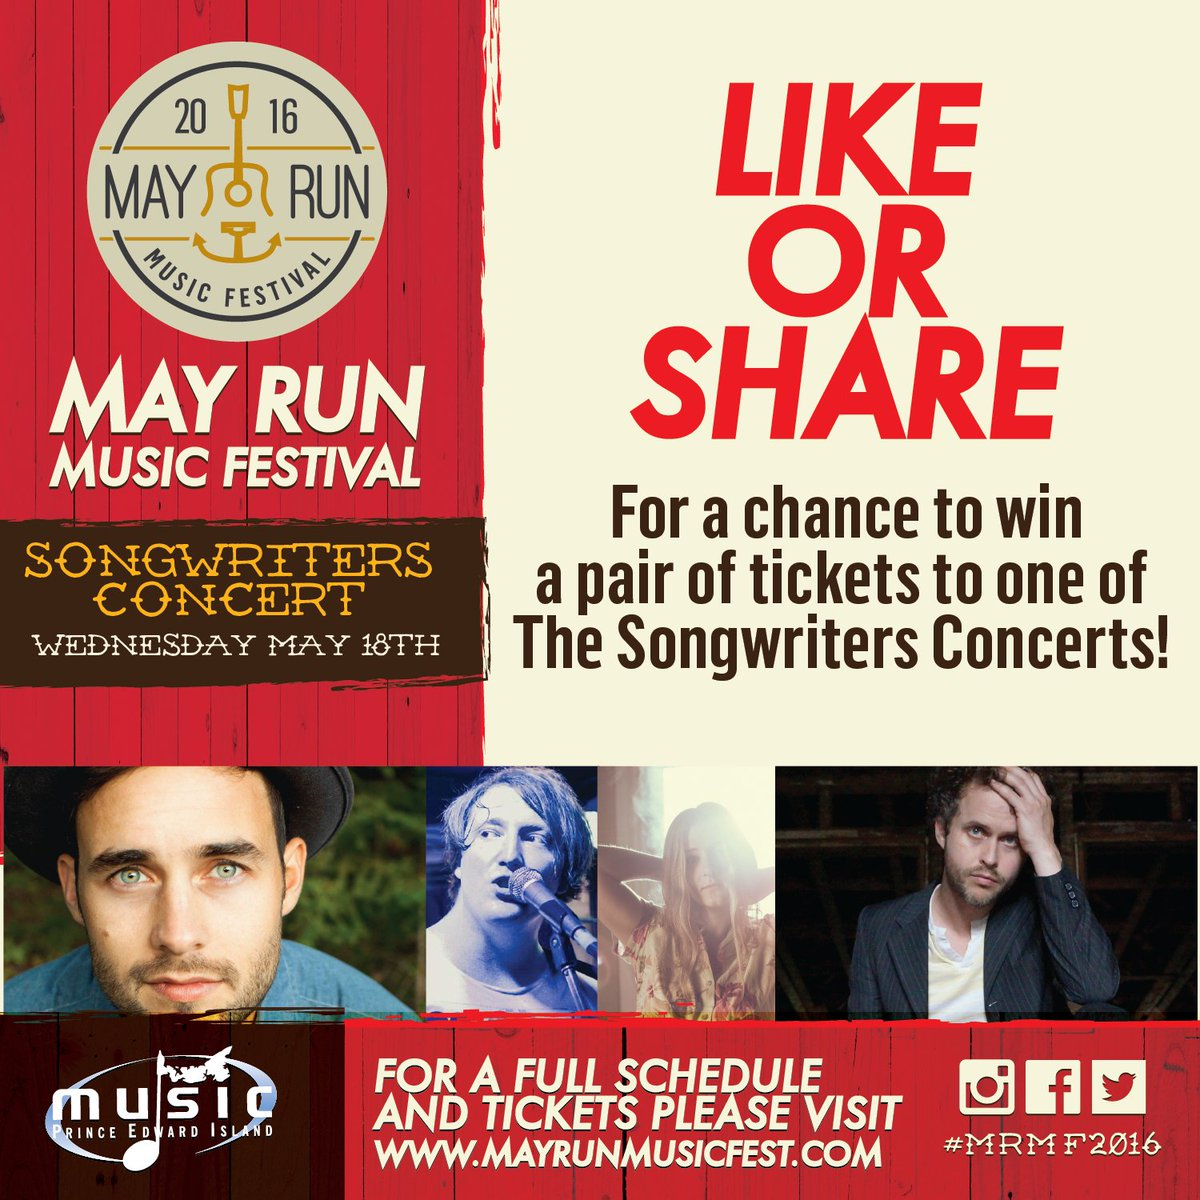 Retweet for a chance to win some tix to see @timchaisson @emileesorrey @NathanWiley_ & Josh Carter! #MRMF2016 #PEI https://t.co/lOdmhWFPYs